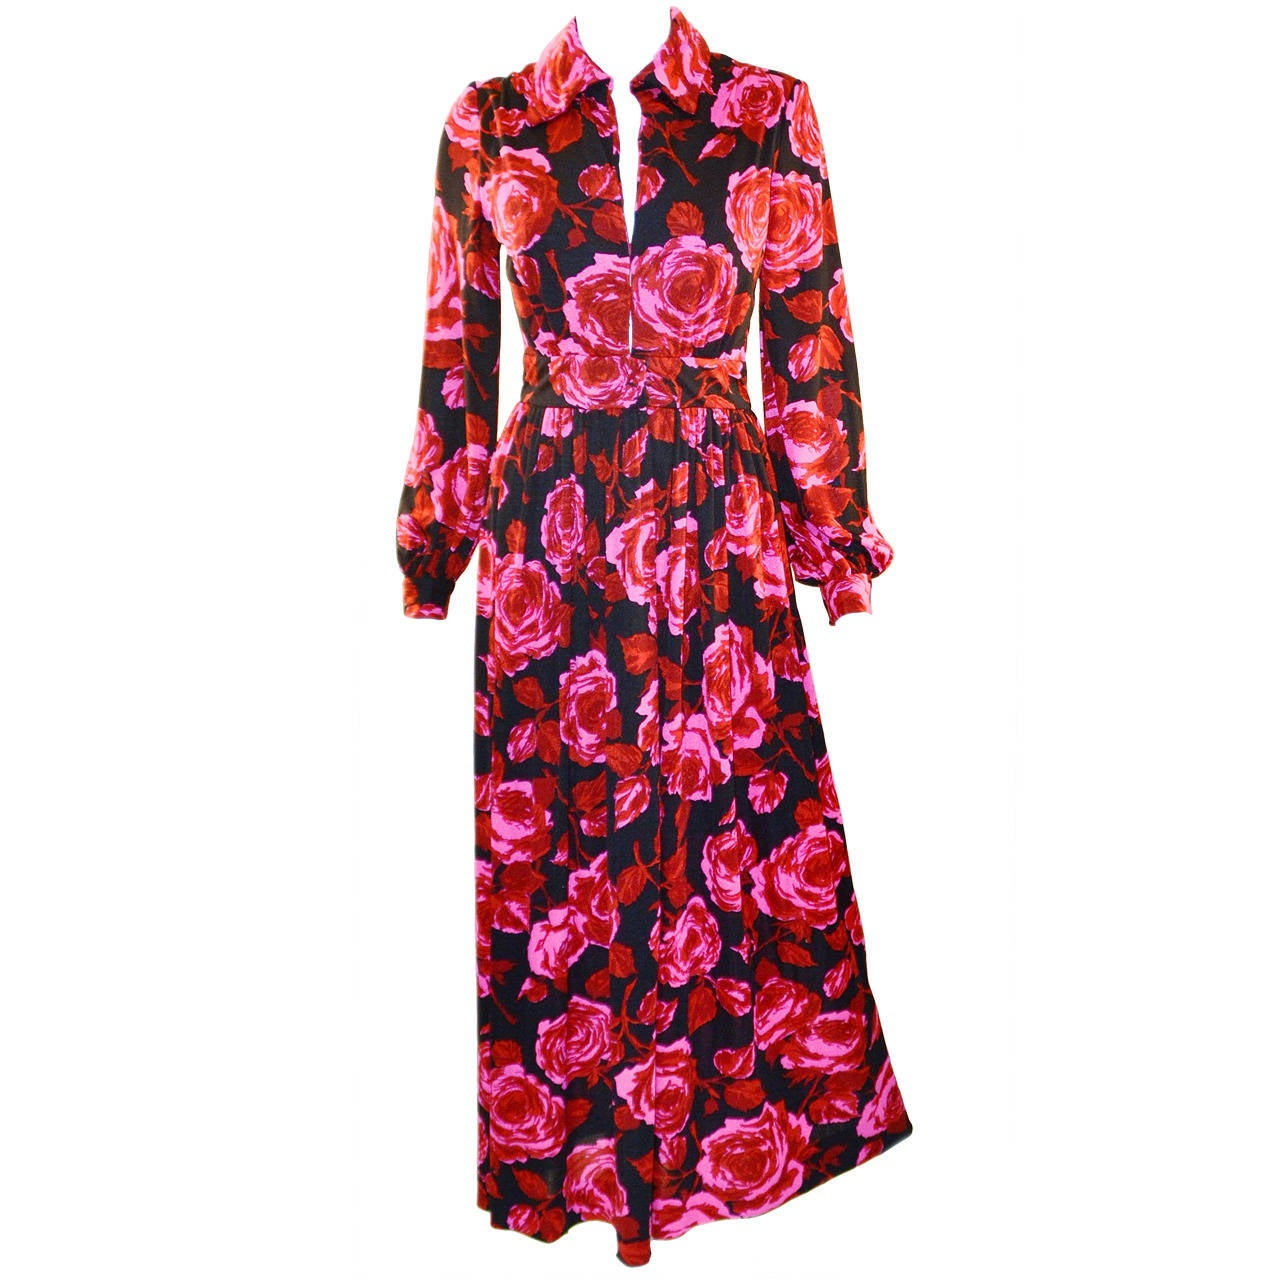 Sakowitz Vibrant Red and Pink Maxi Dress, 1970s  1